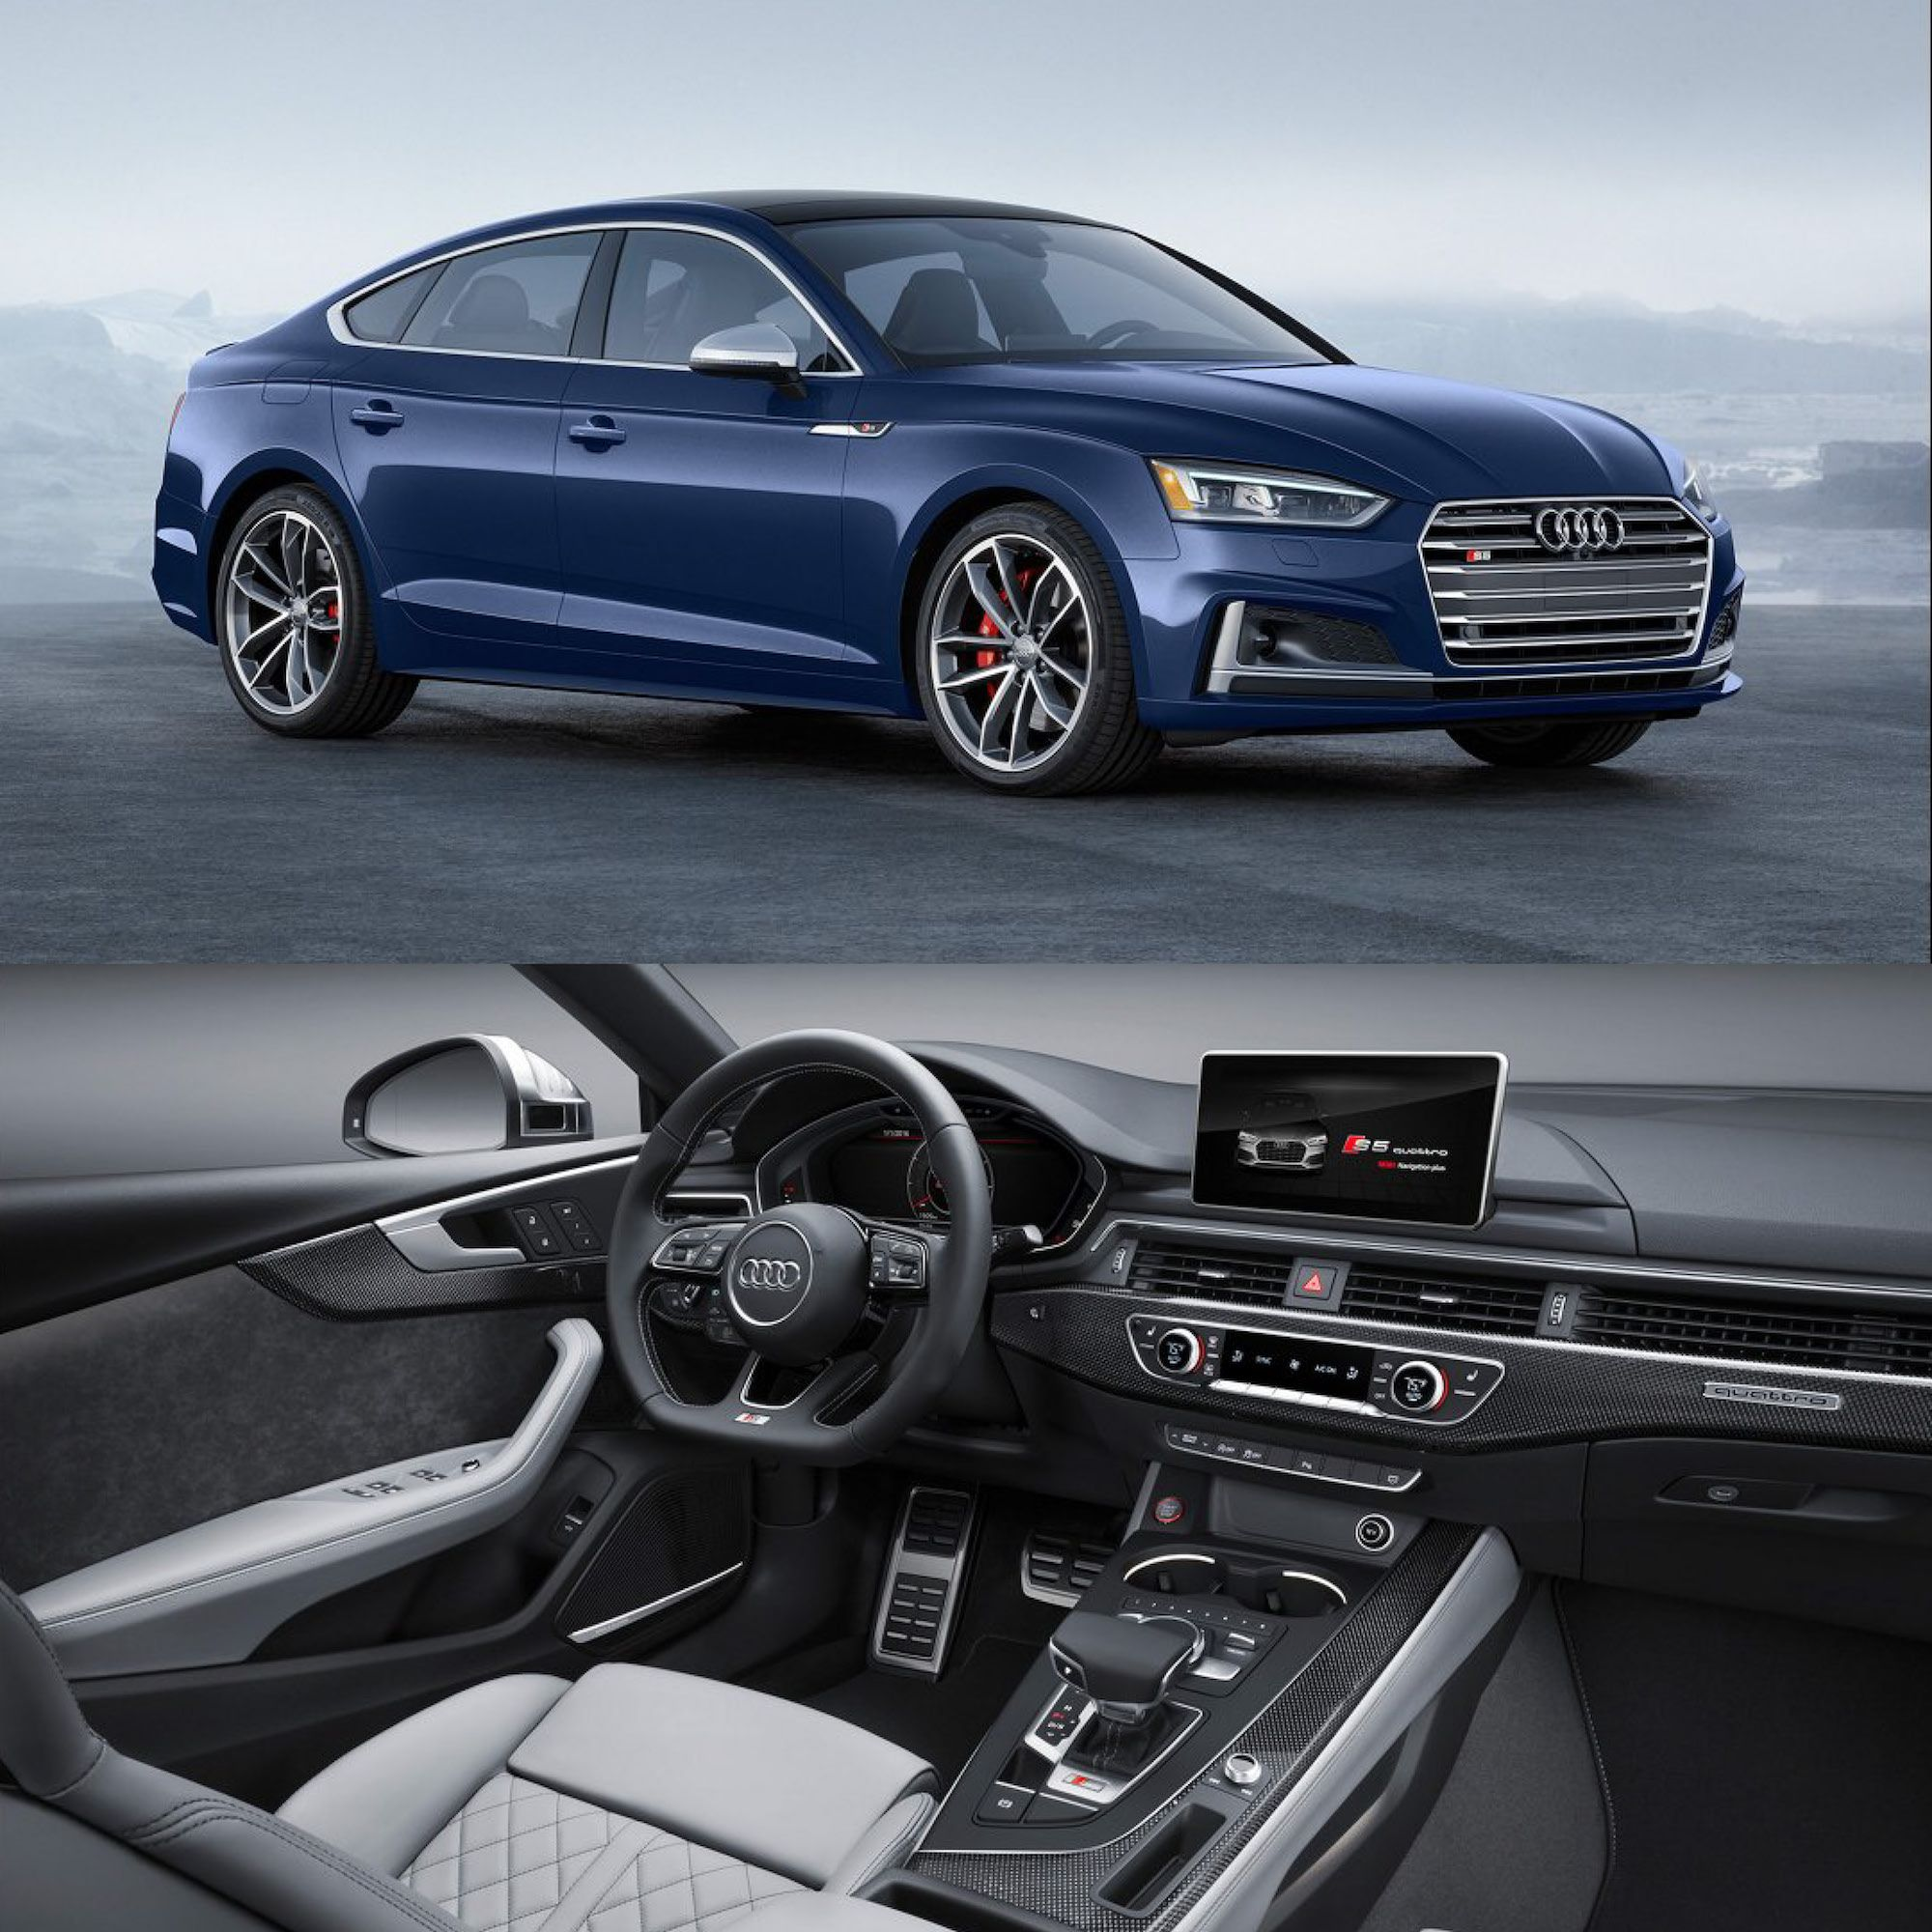 The Audi S Sportback Offers Headturning Performance Learn - Audi lowest model price